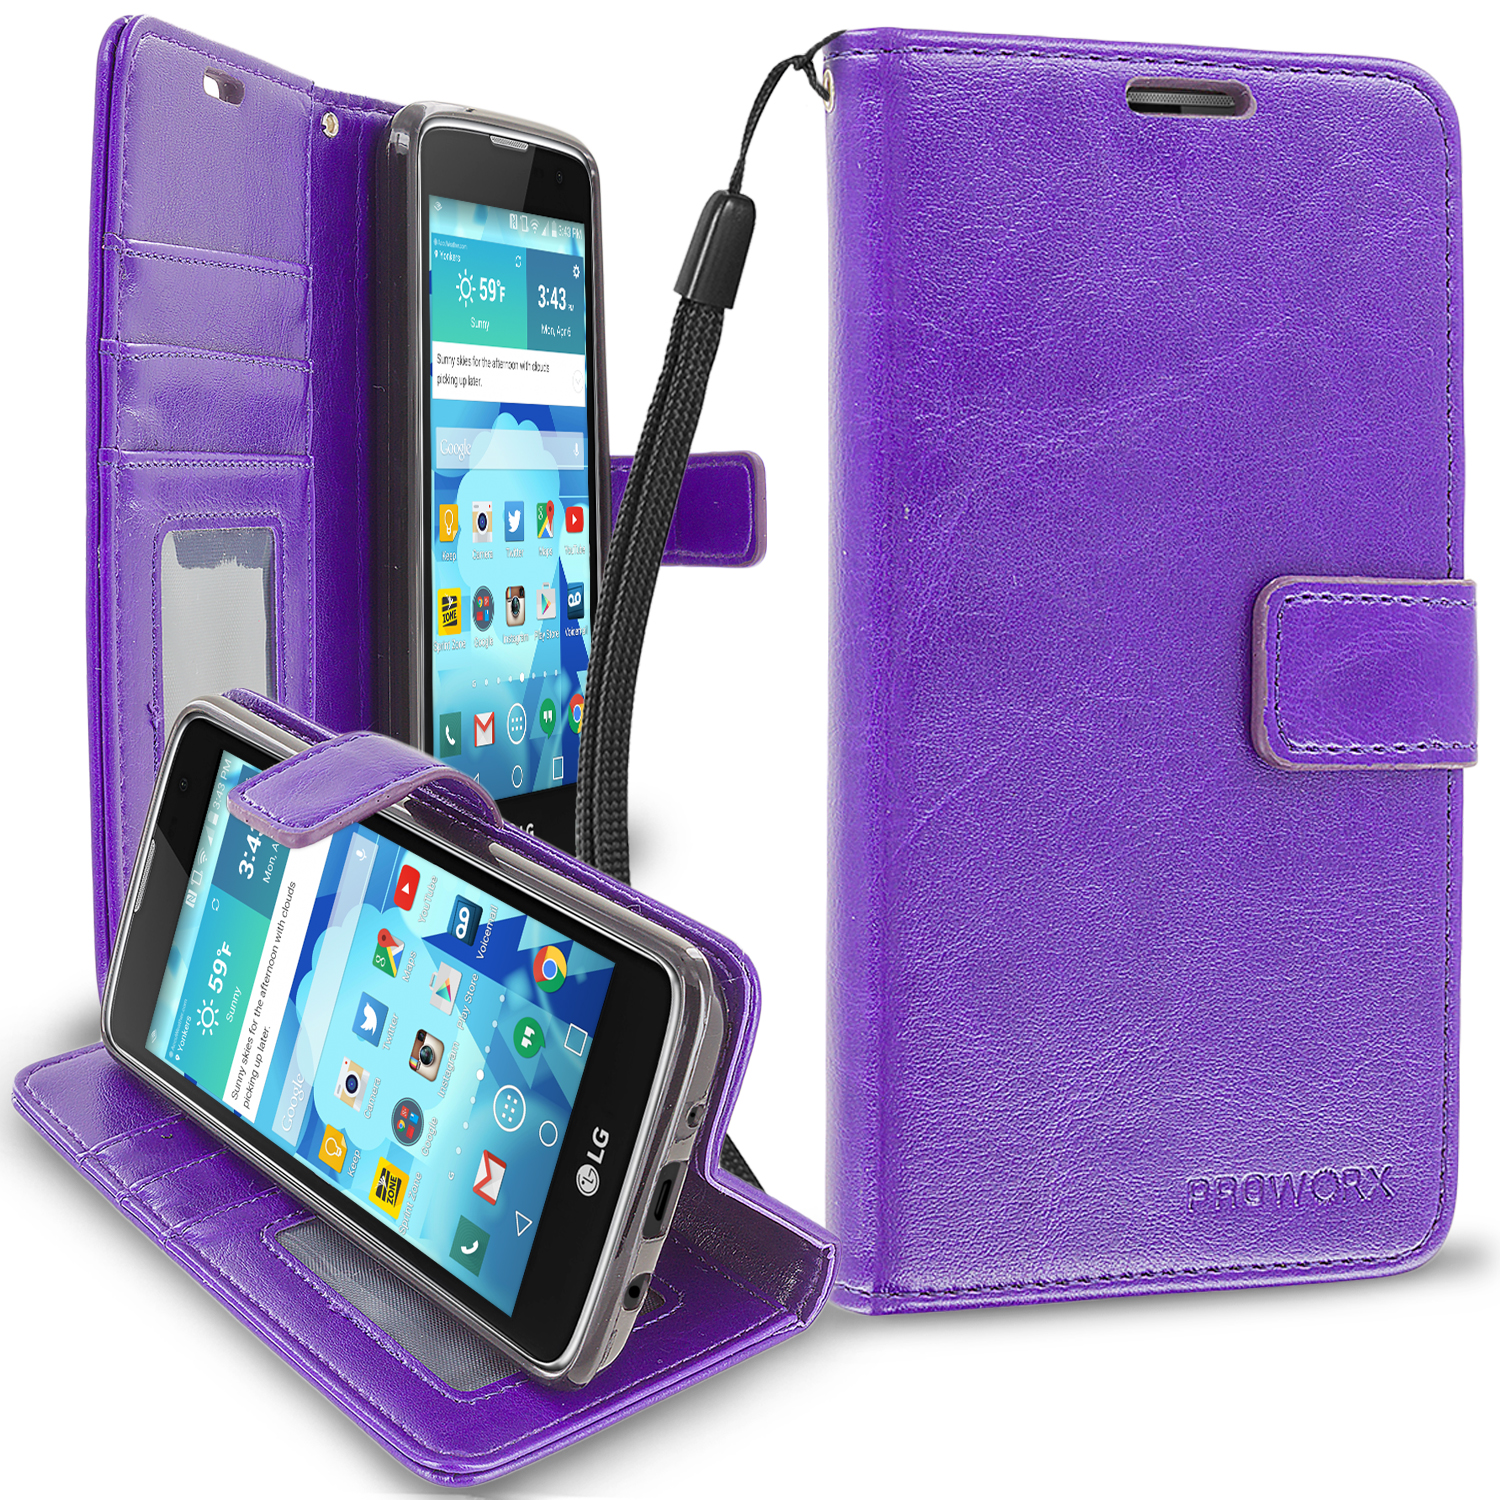 LG Tribute 5 K7 Phoenix 2 Escape 3 Treasure Purple ProWorx Wallet Case Luxury PU Leather Case Cover With Card Slots & Stand